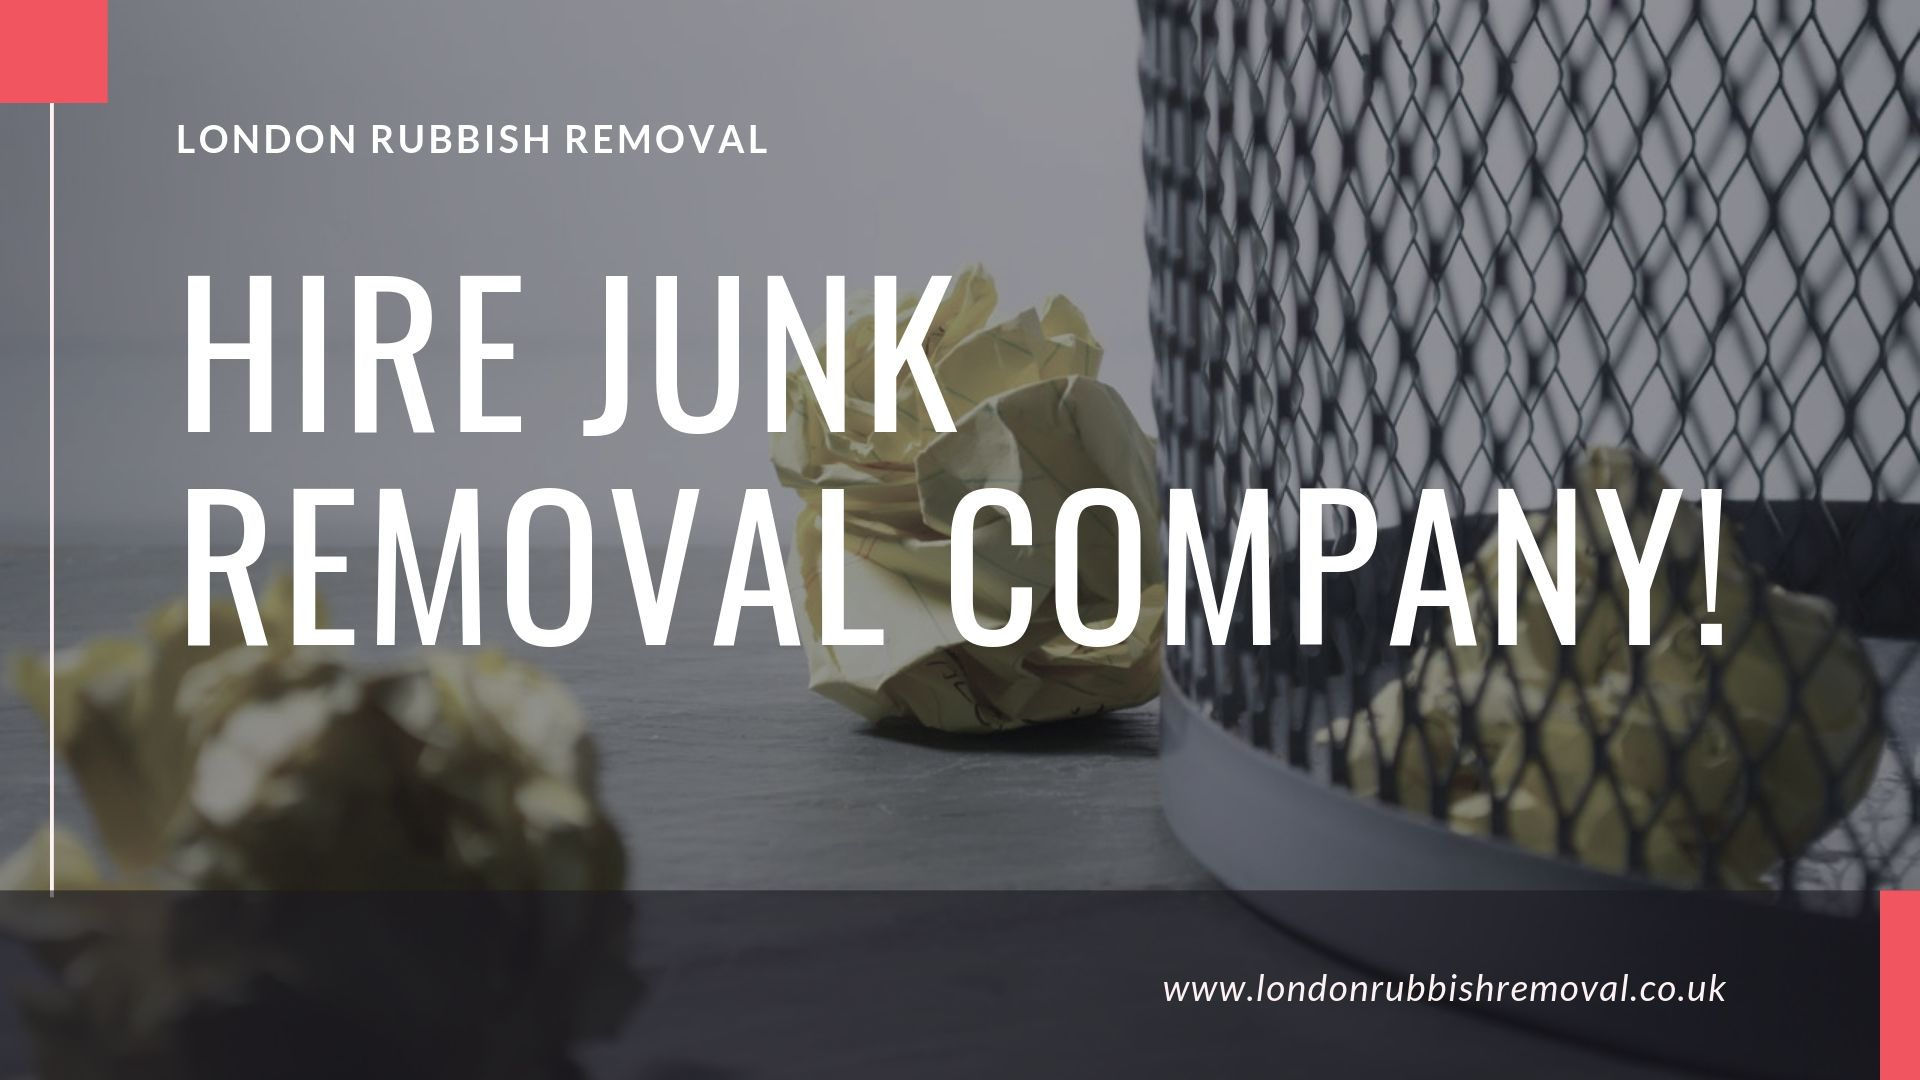 Hire Junk Removal Company in London